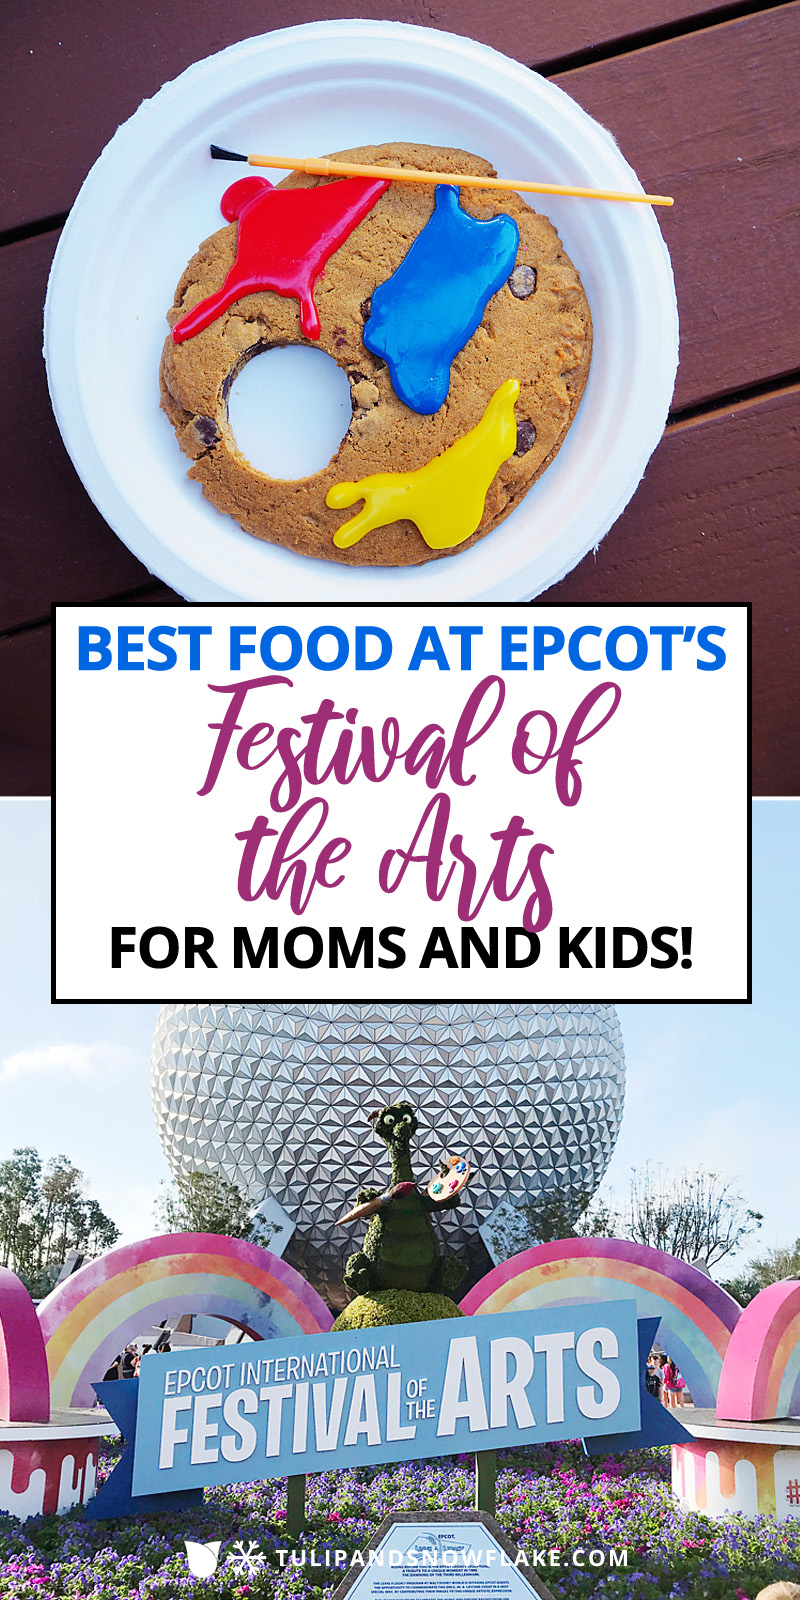 Best food at Epcot's Festival of the Arts